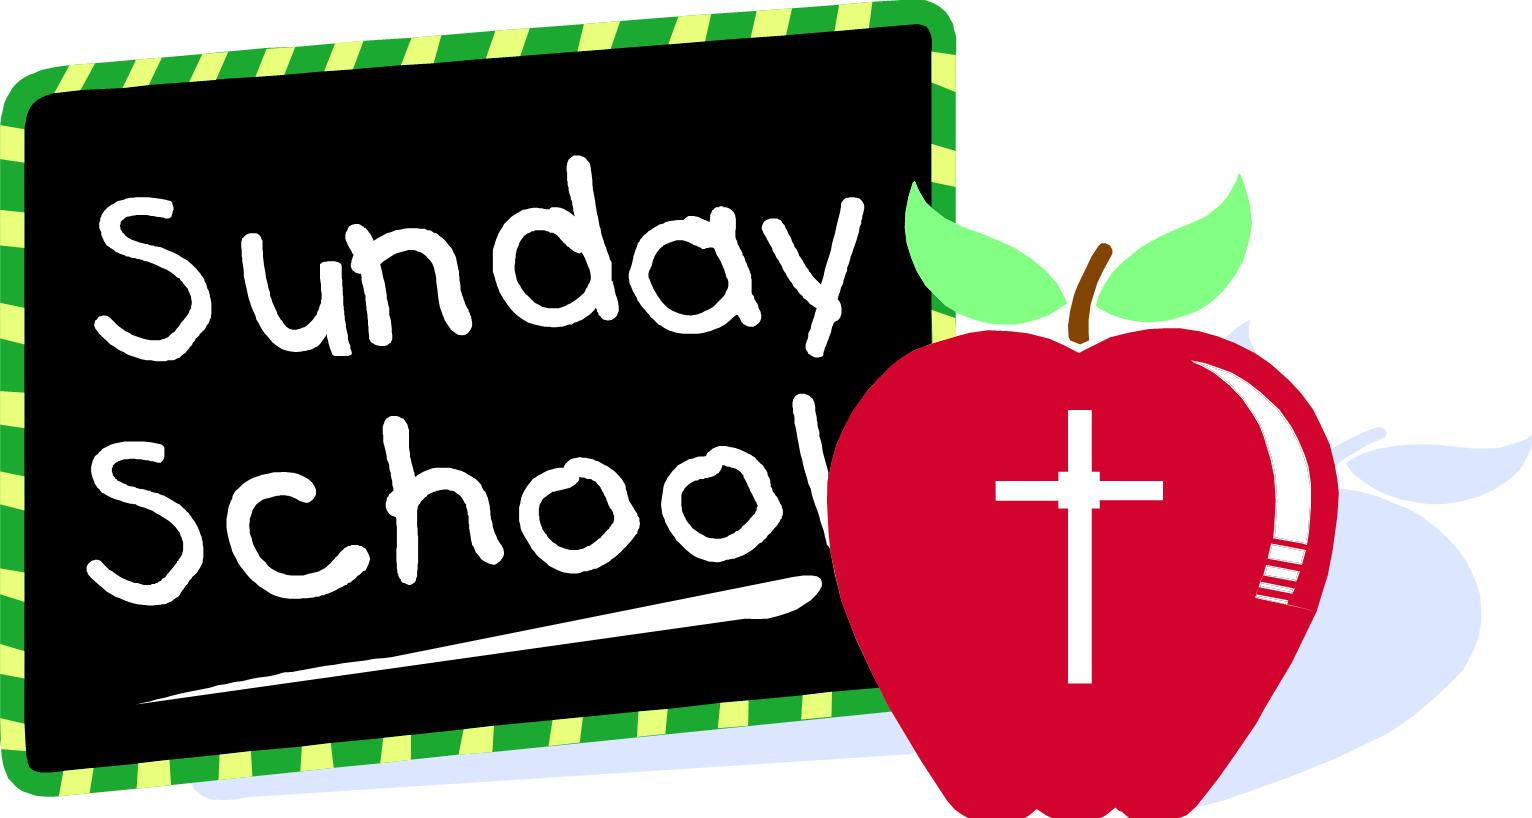 Sunday school training clipart jpg black and white download Church School Cliparts | Free download best Church School ... jpg black and white download